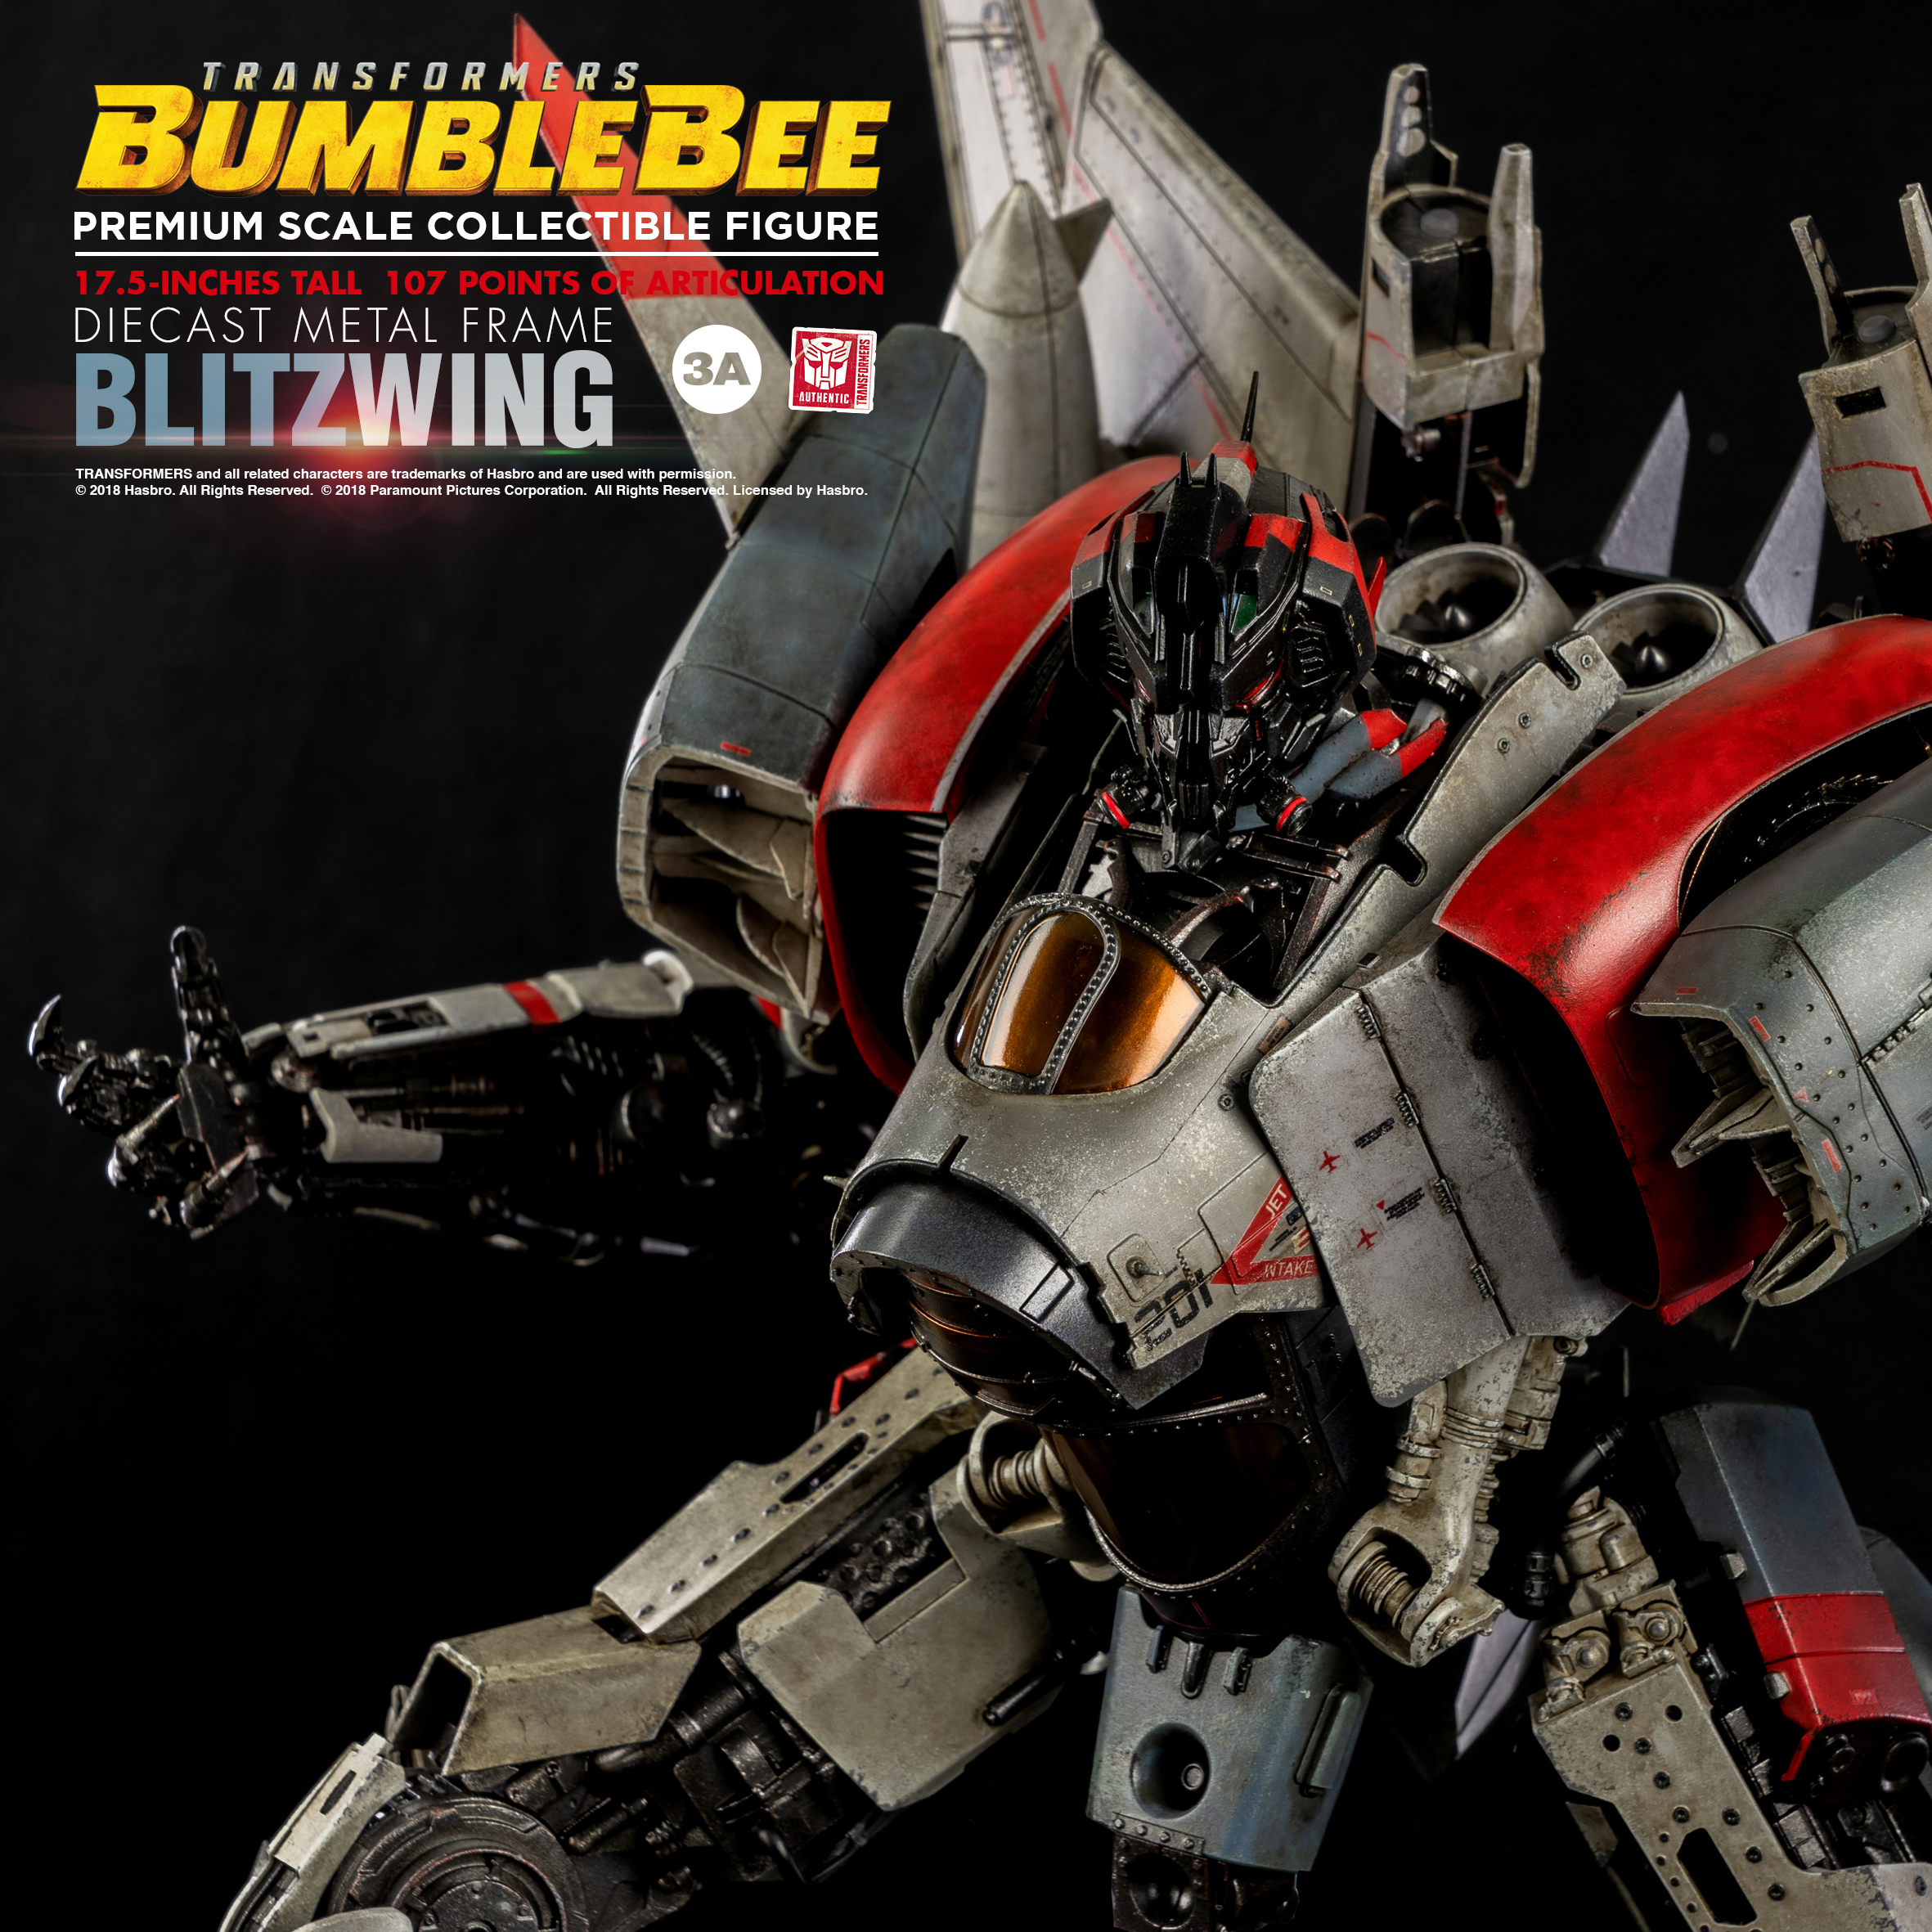 Blitzwing_PM_1075(Teaser).jpg